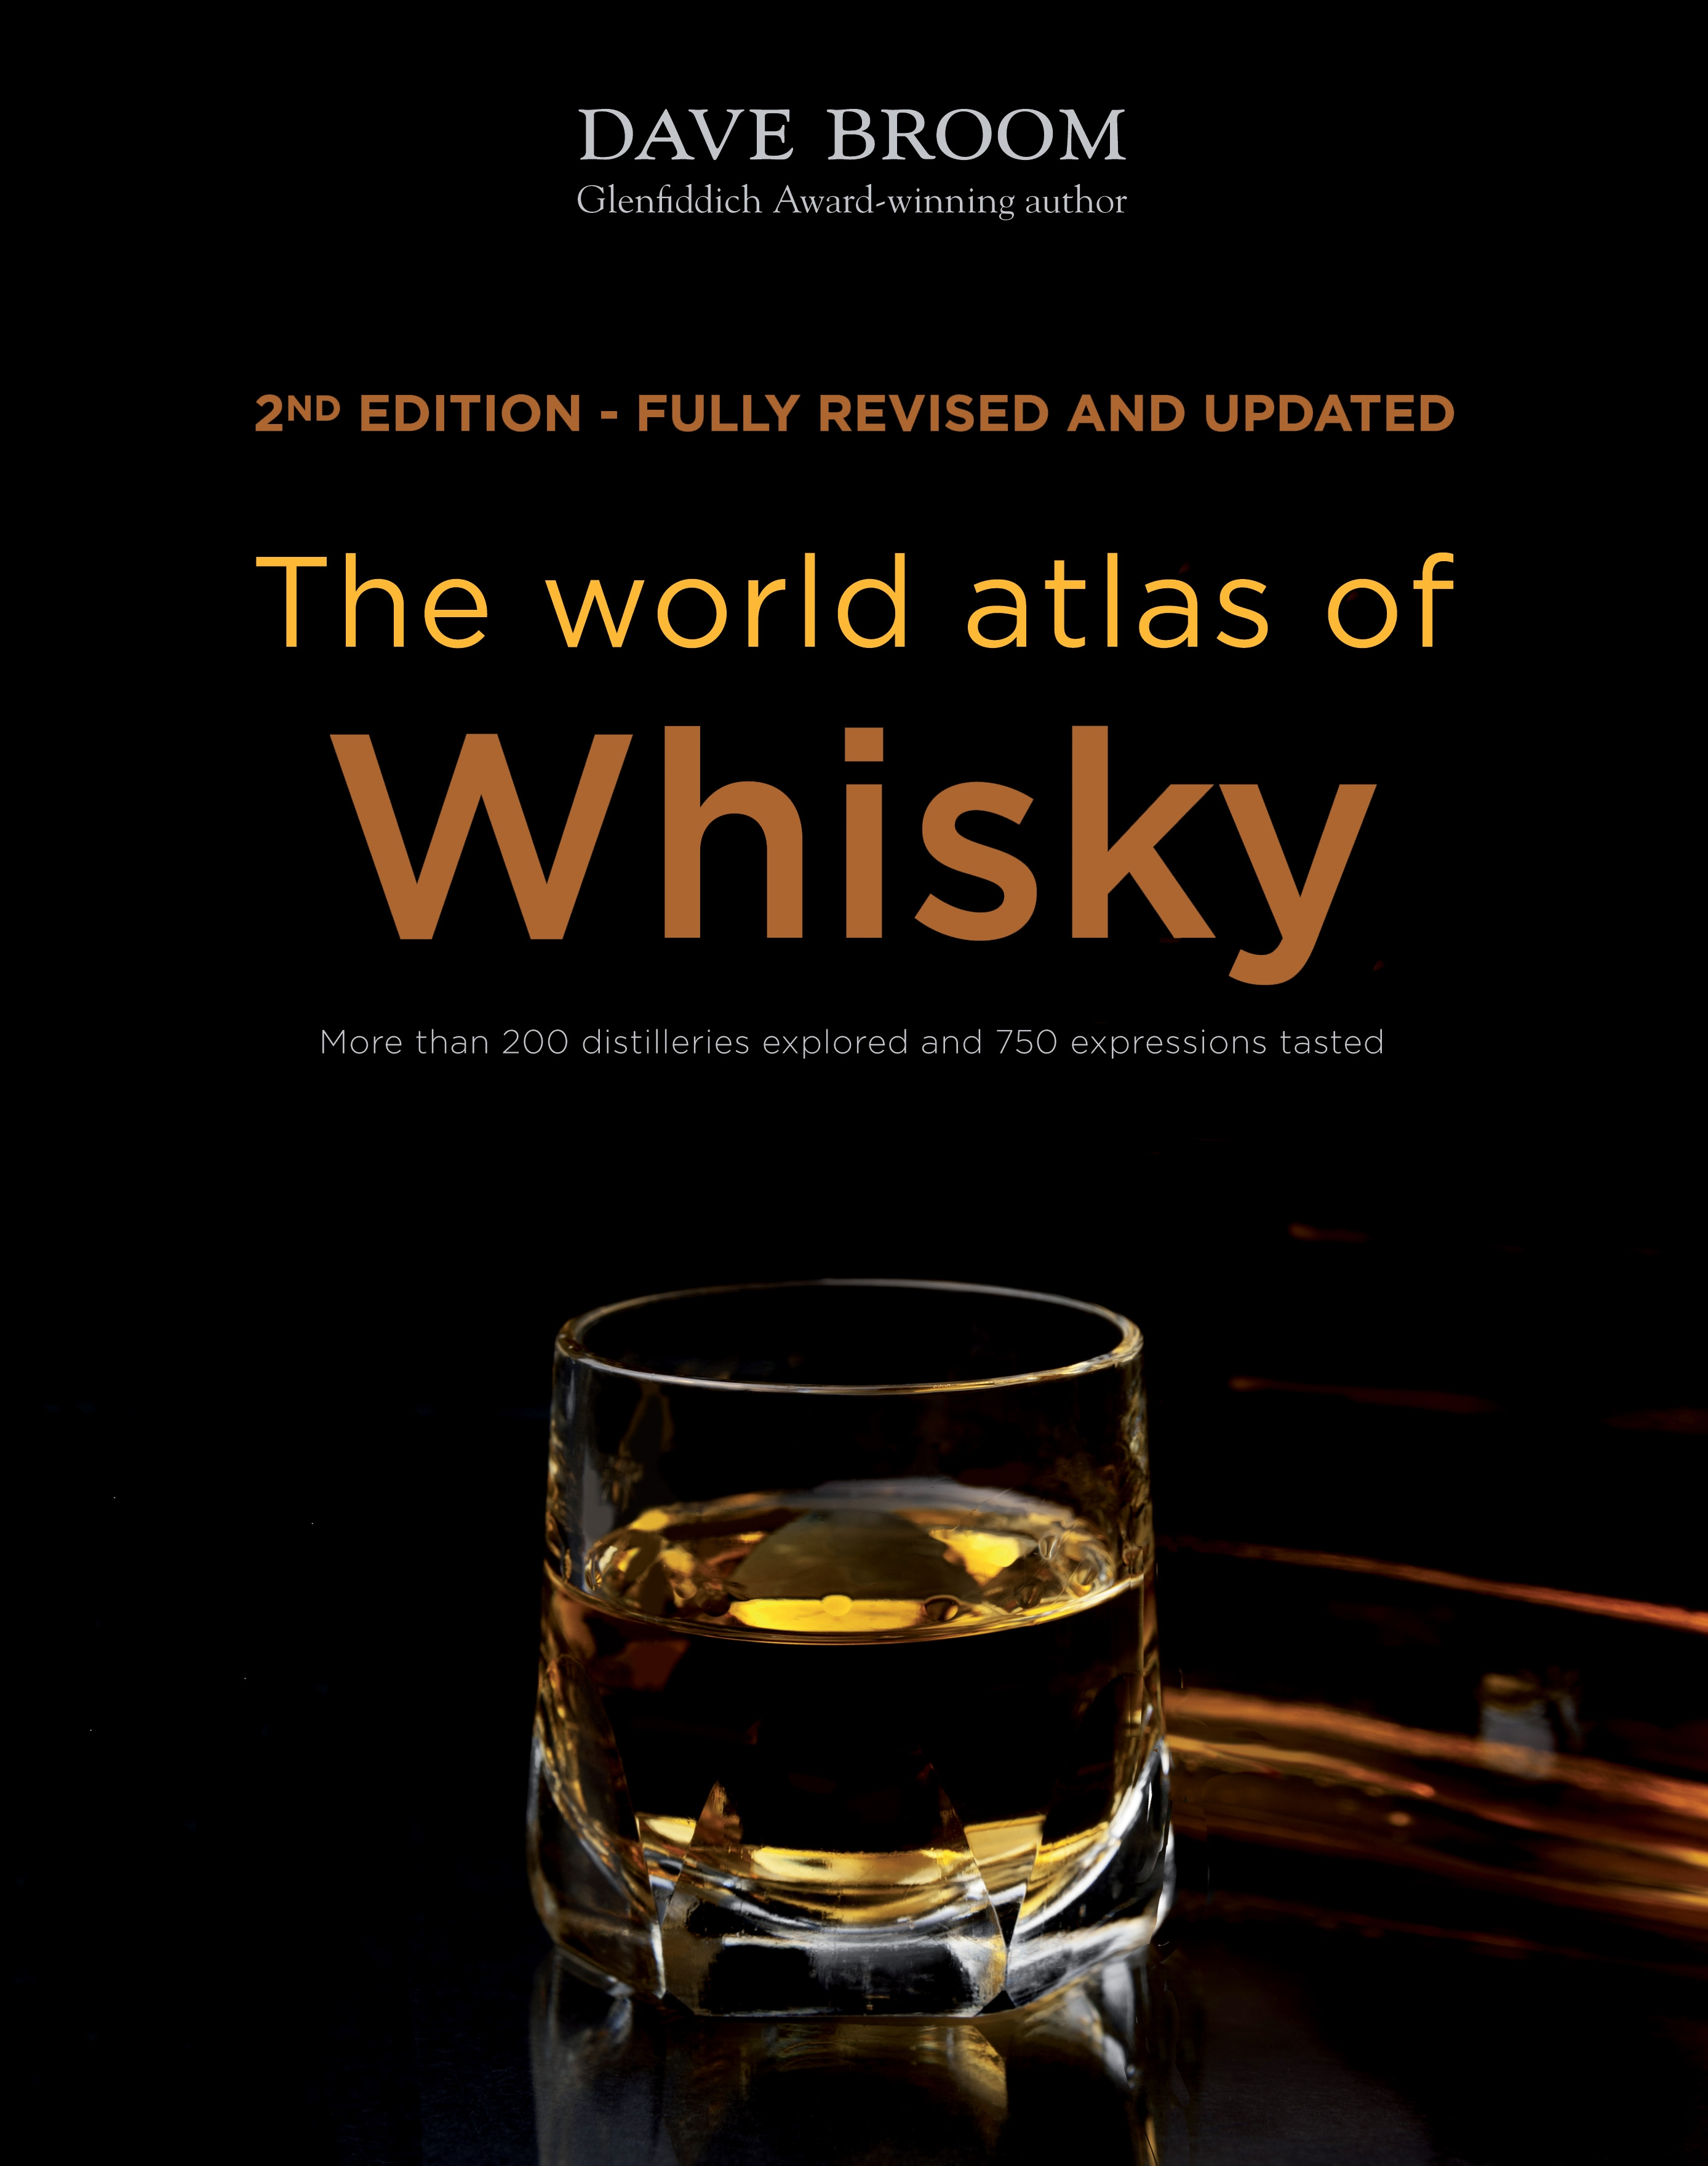 The World Atlas of Whisky by Dave Broom, ISBN: 9781845339517